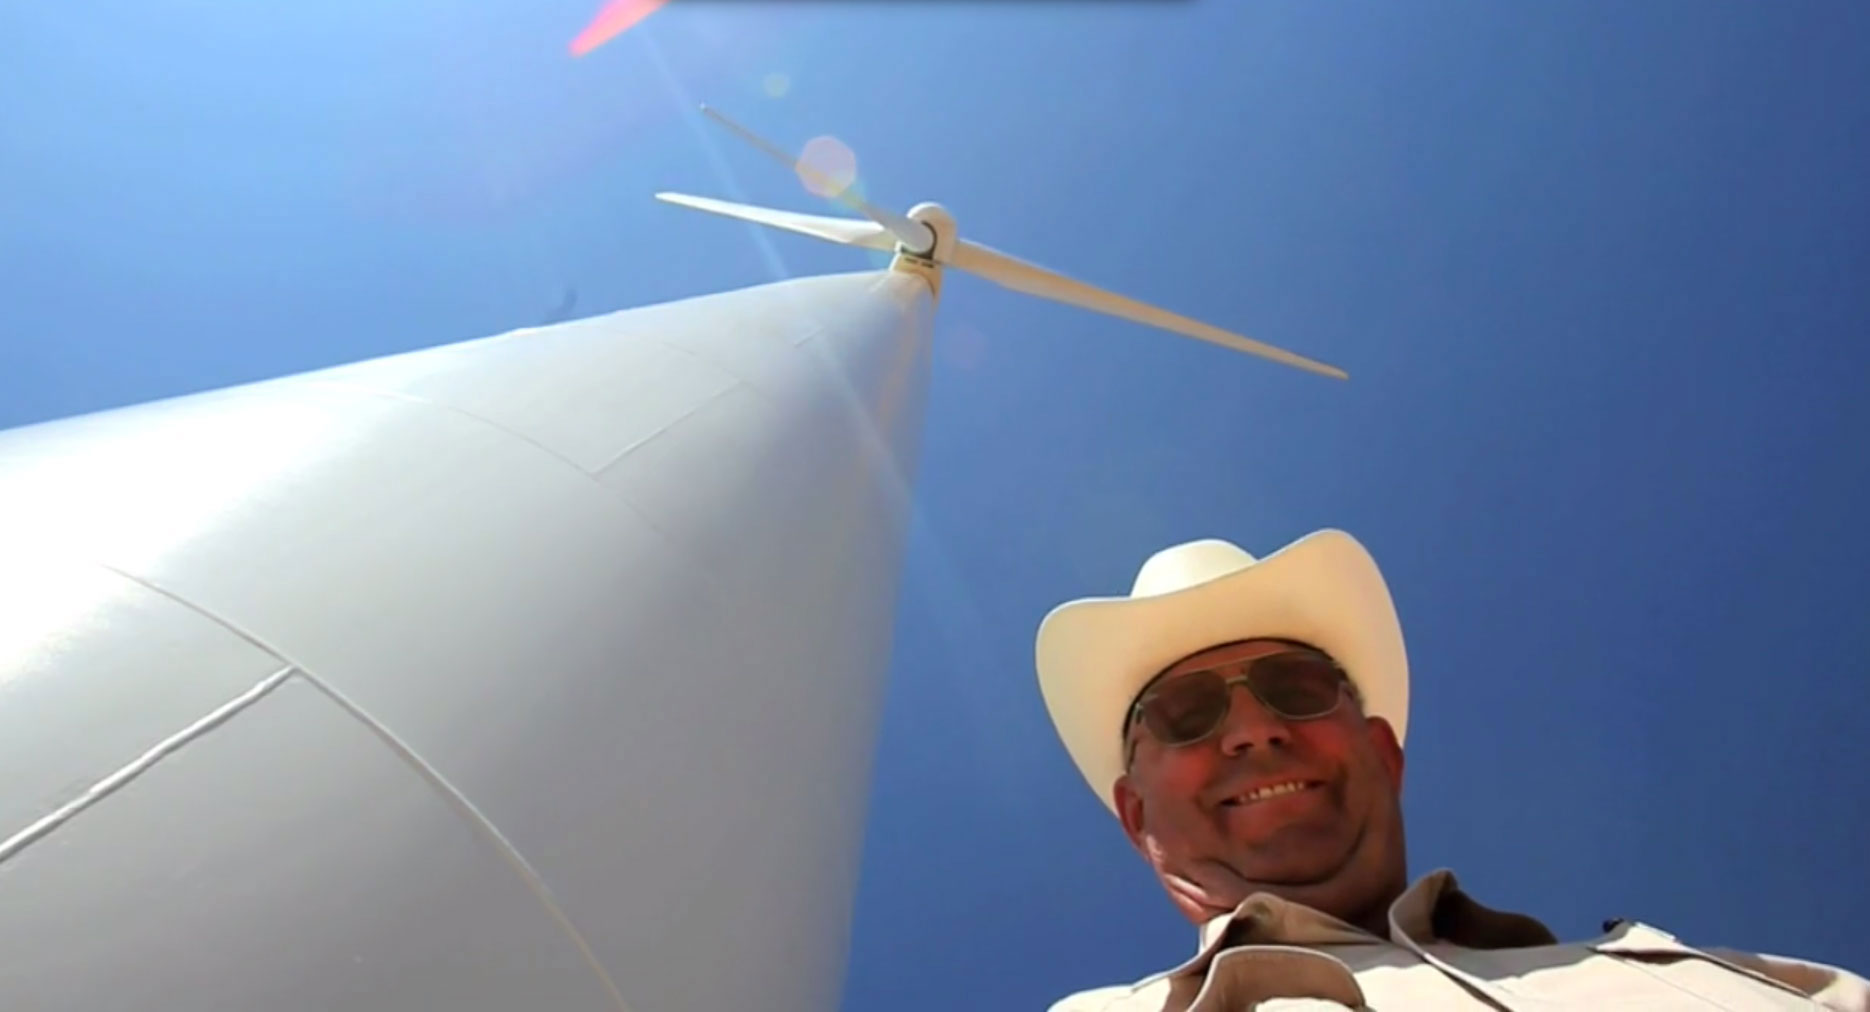 man with windmill